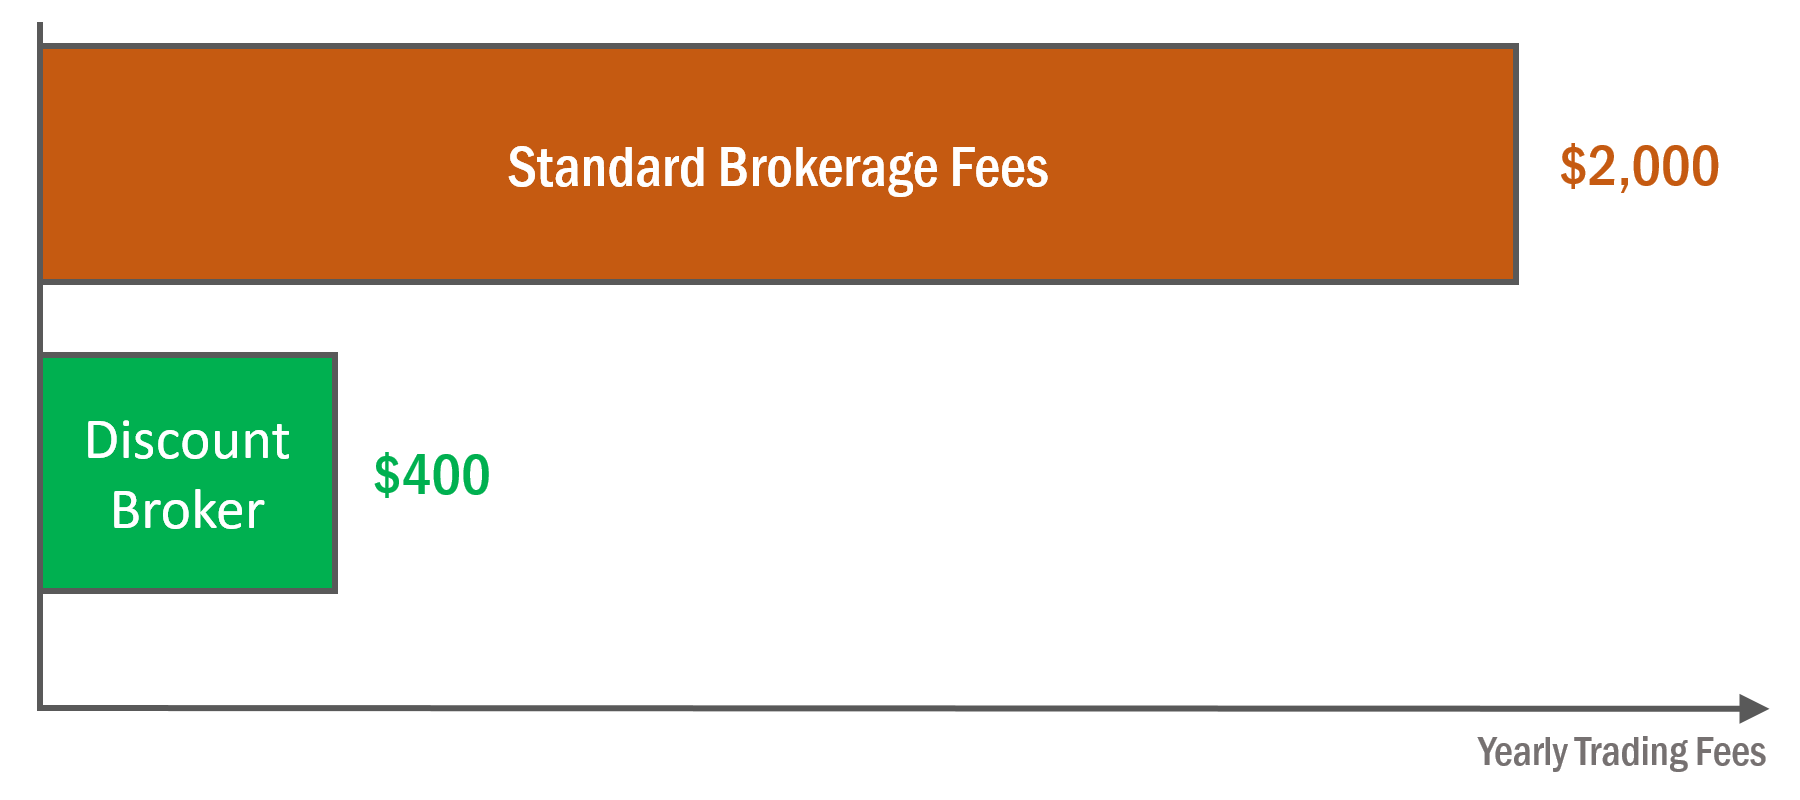 horizontal bar chart showing two different fees